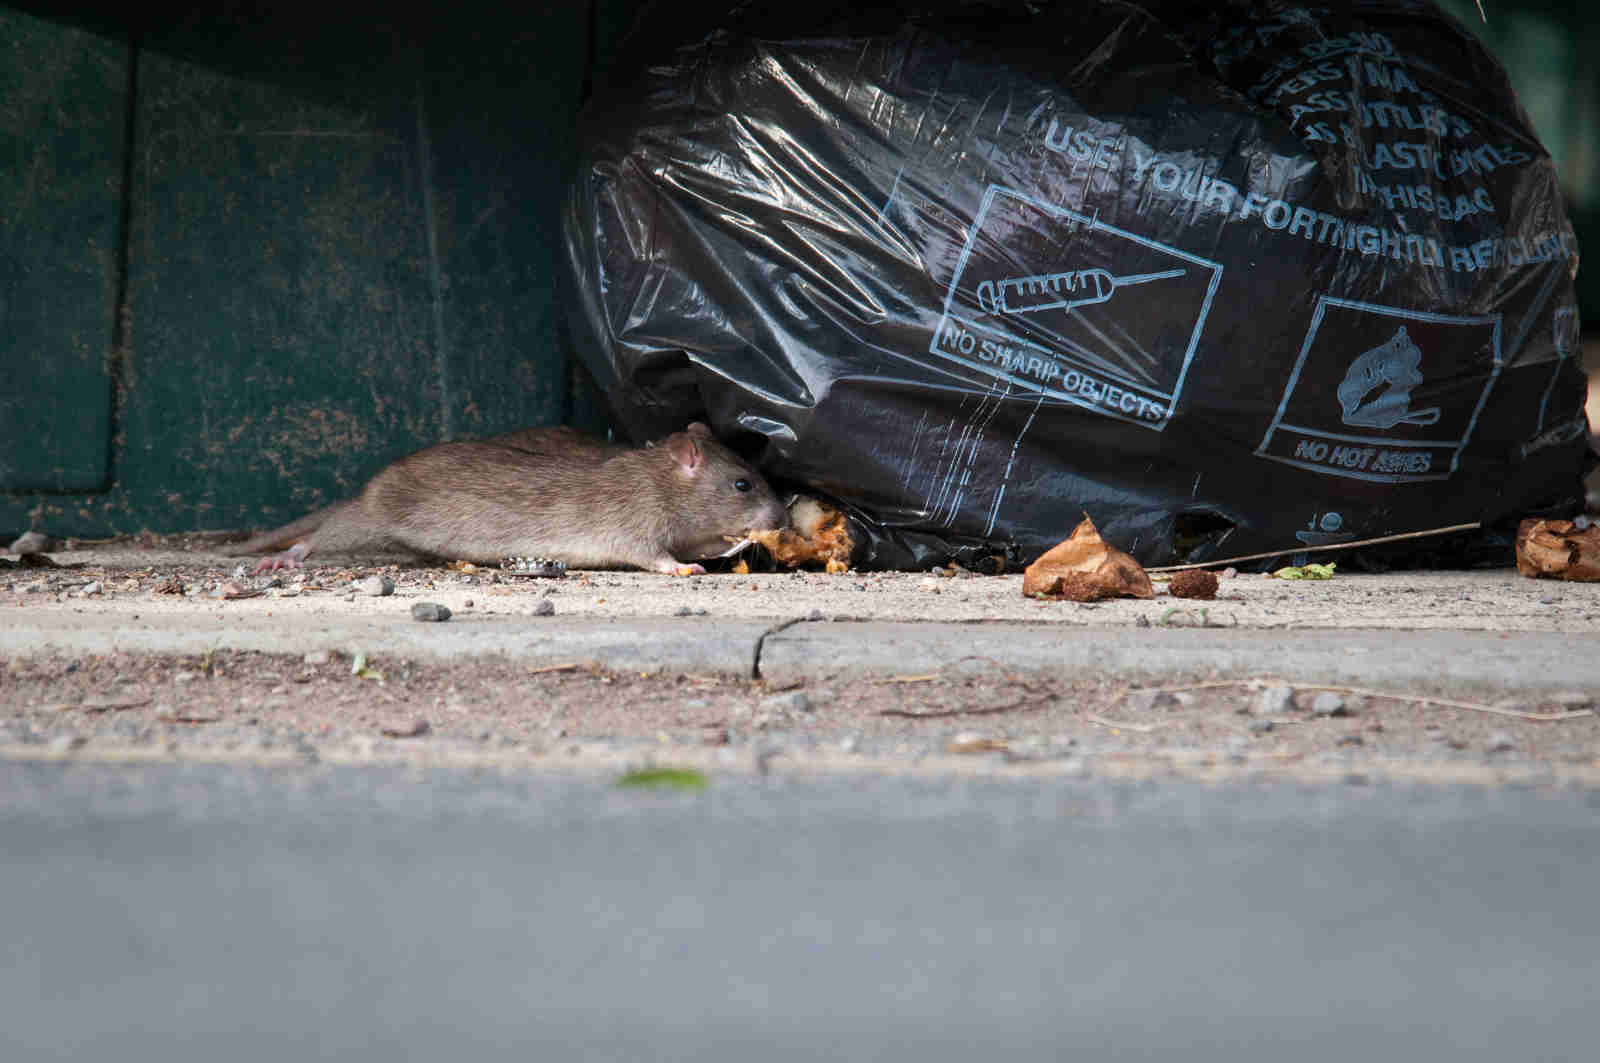 Rat eating from rubbish bag left in the street